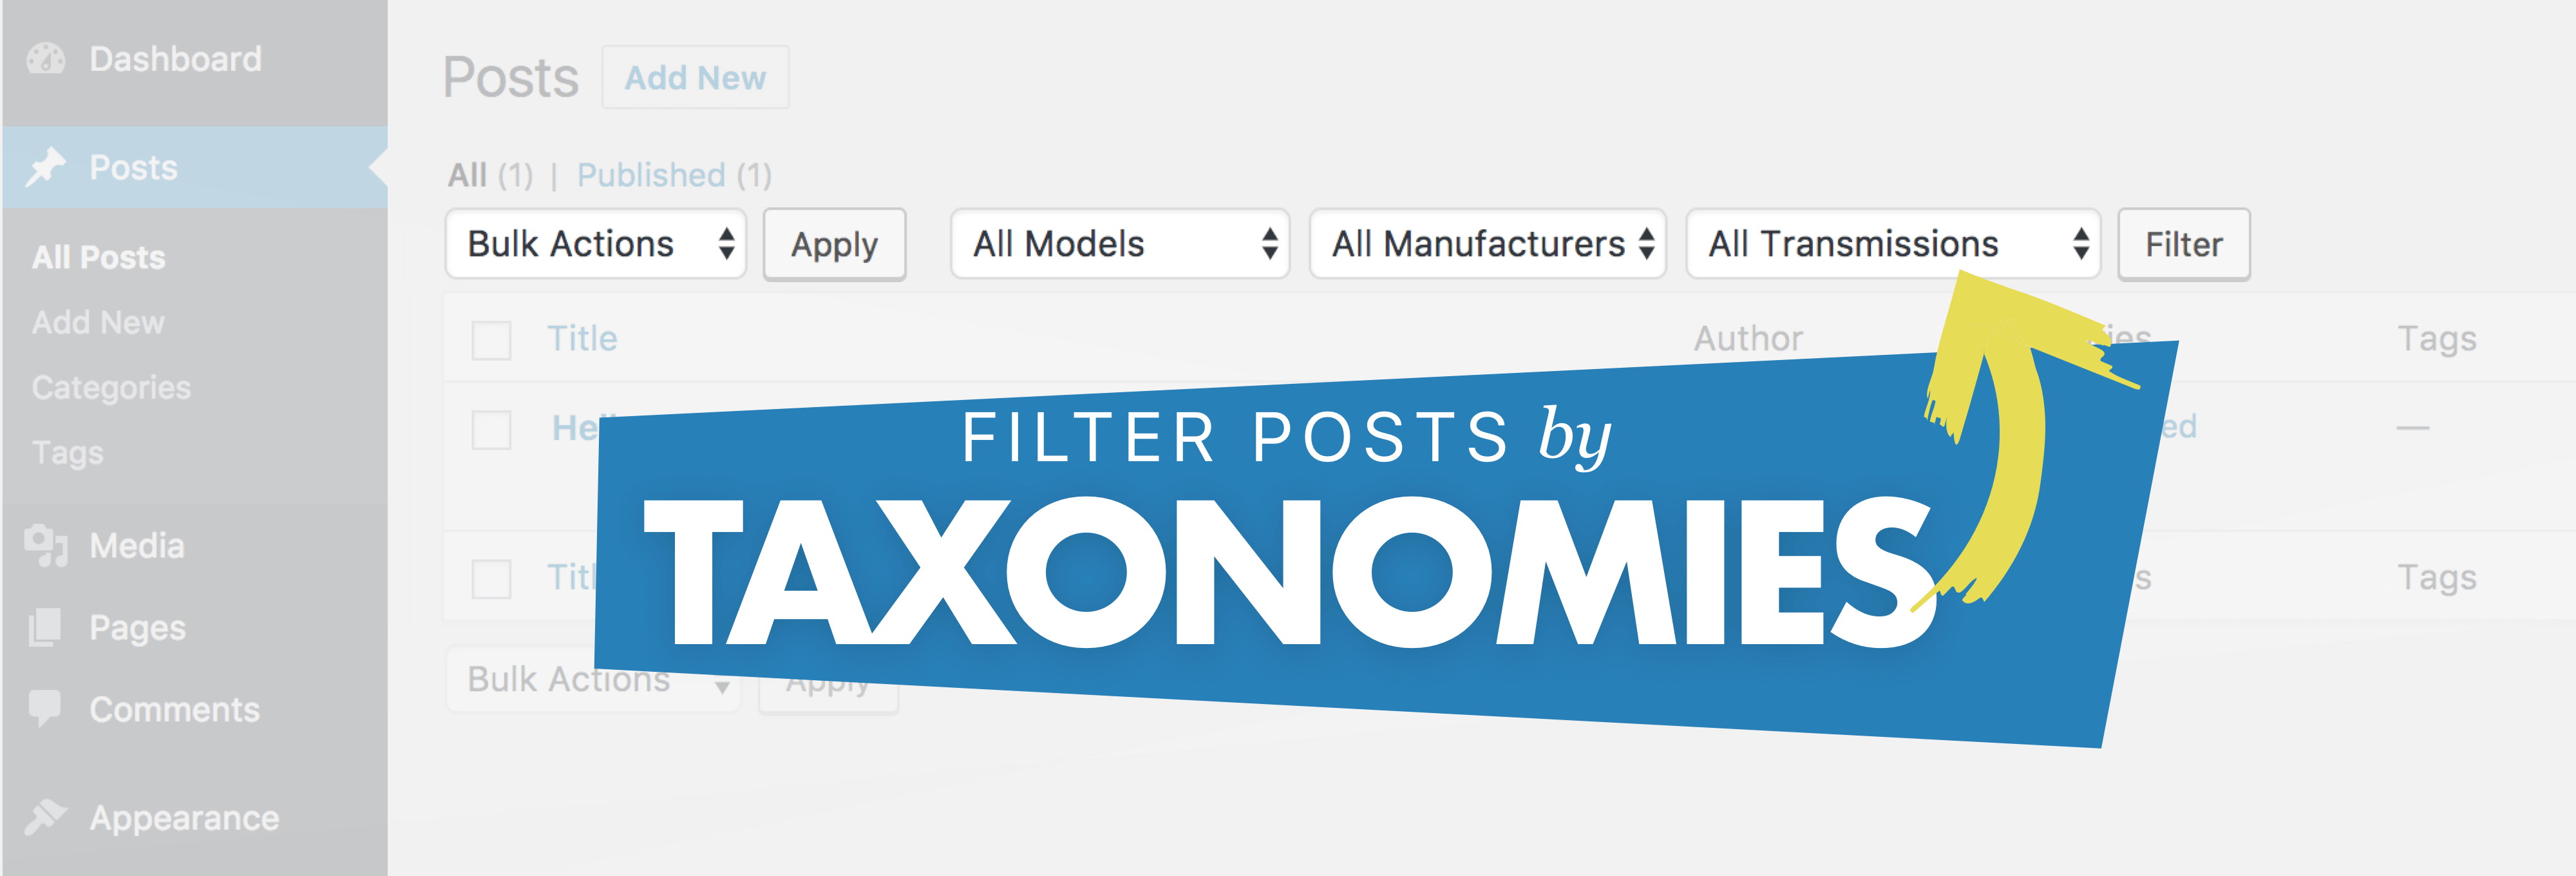 Filter Posts by Taxonomies